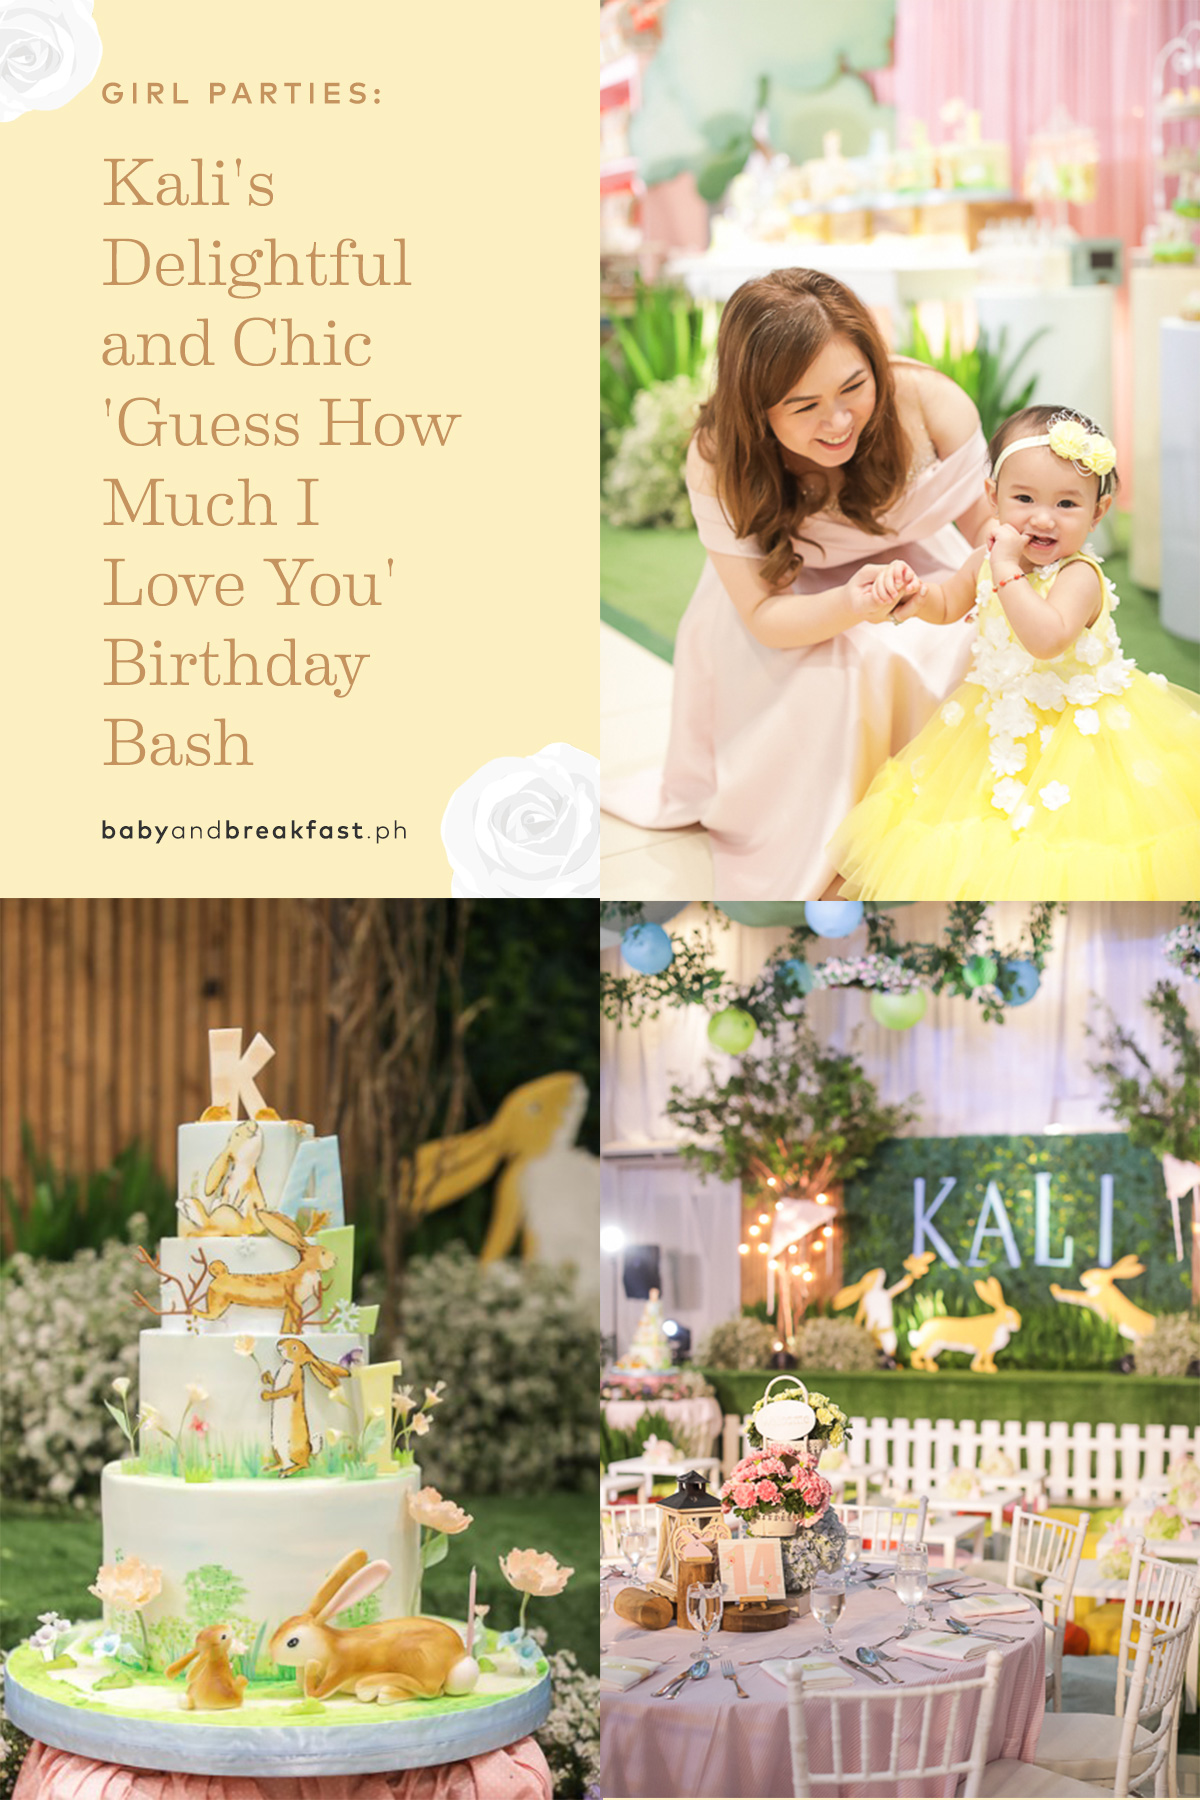 Kali's Delightful and Chic 'Guess How Much I Love You' Birthday Bash